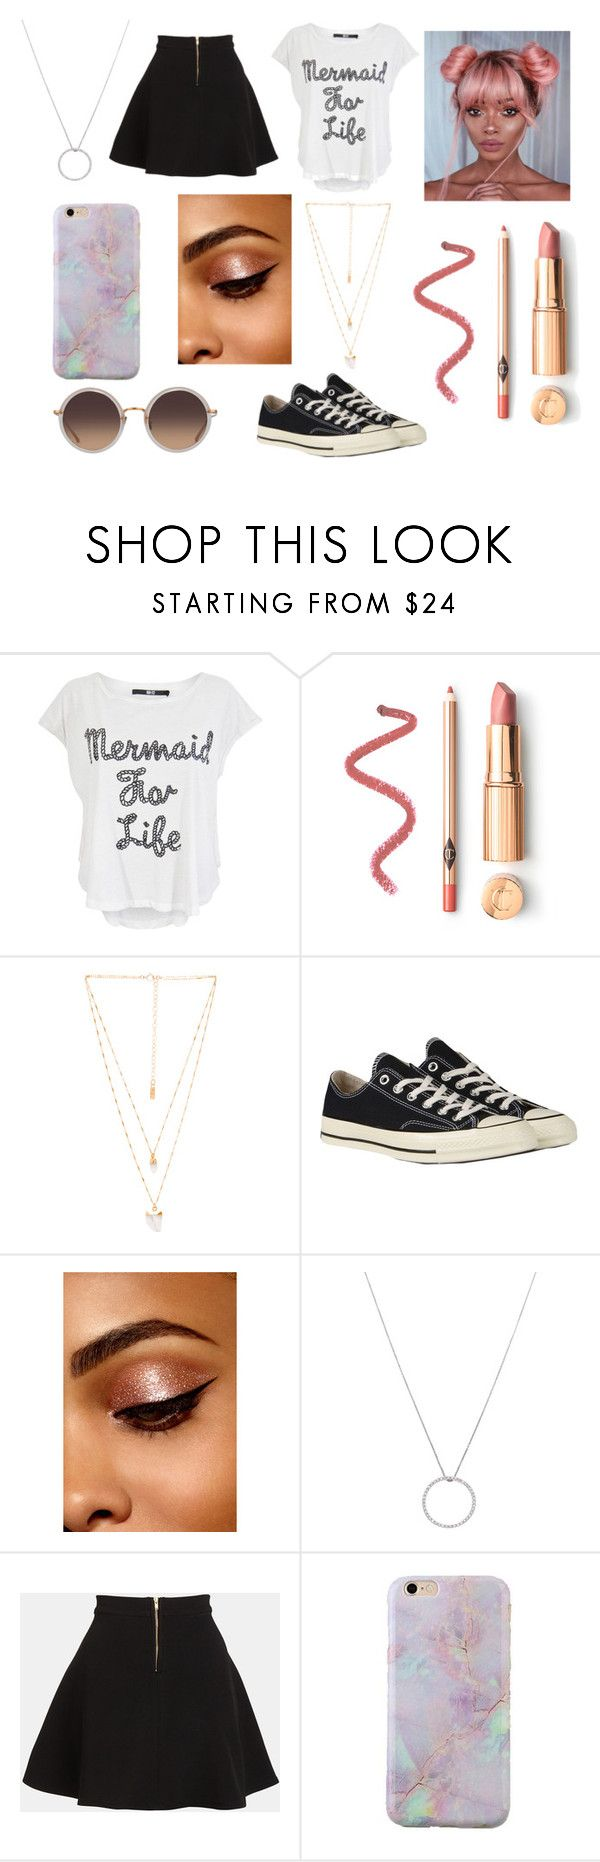 """""""Mermaids Do It Better"""" by x-emily-herondale-x ❤ liked on Polyvore featuring Iron Fist, Natalie B, Converse, Roberto Coin, Parker and Linda Farrow"""